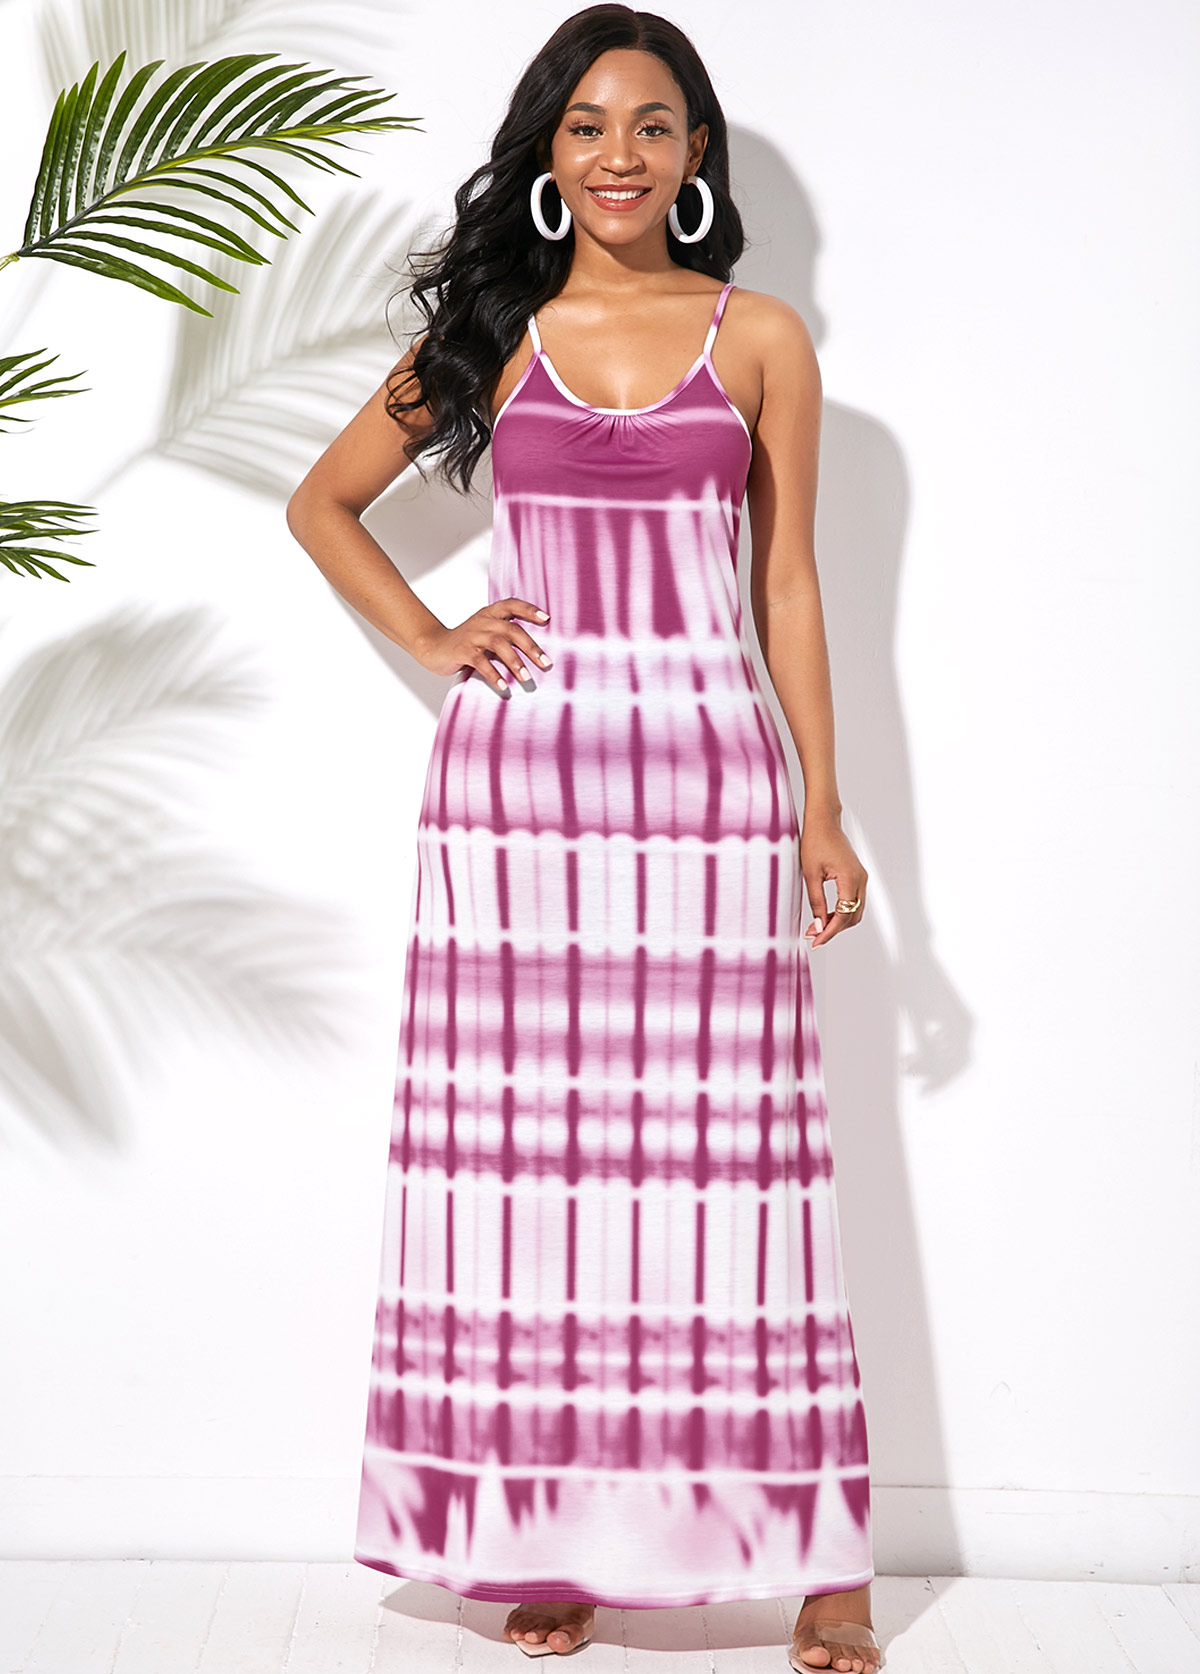 ROTITA Ladder Cutout Back Printed Spaghetti Strap Maxi Dress